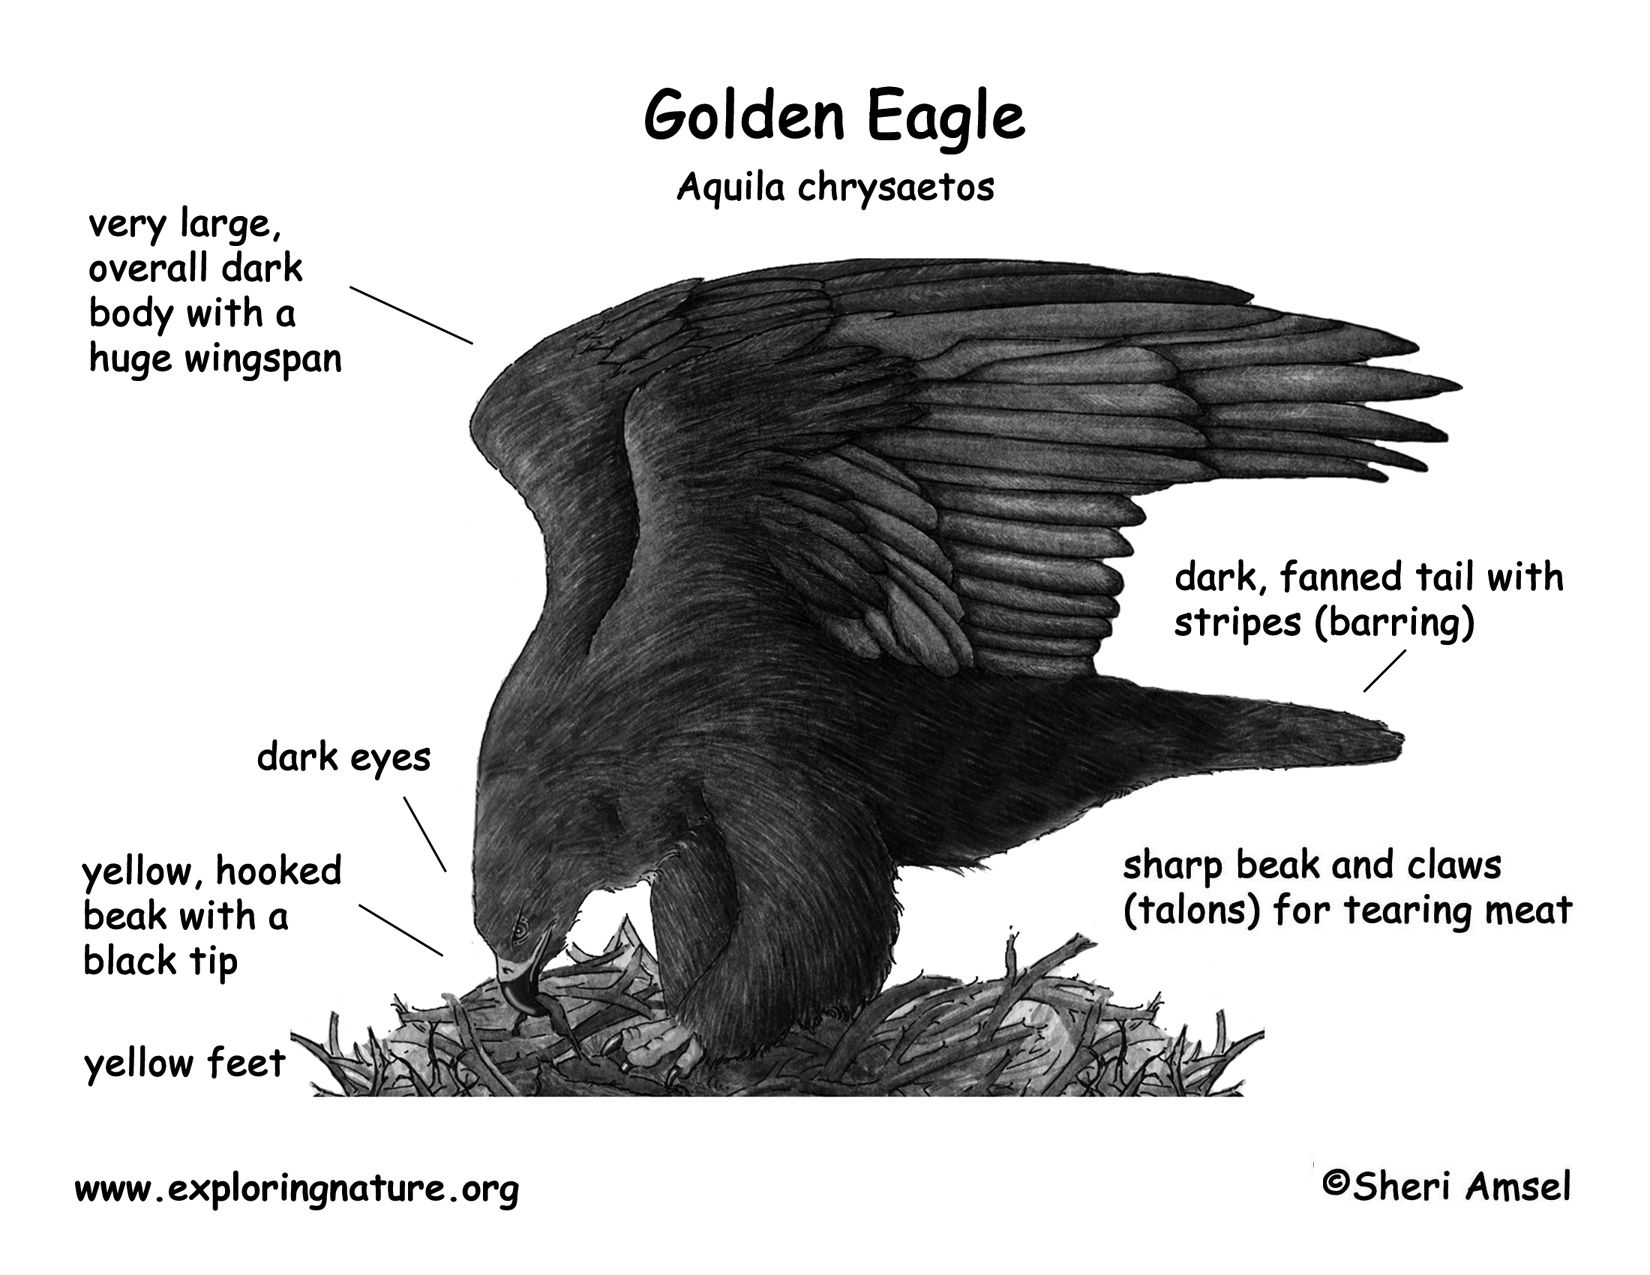 eagle wing diagram wiring trane split system golden vs bald index of graphics bw